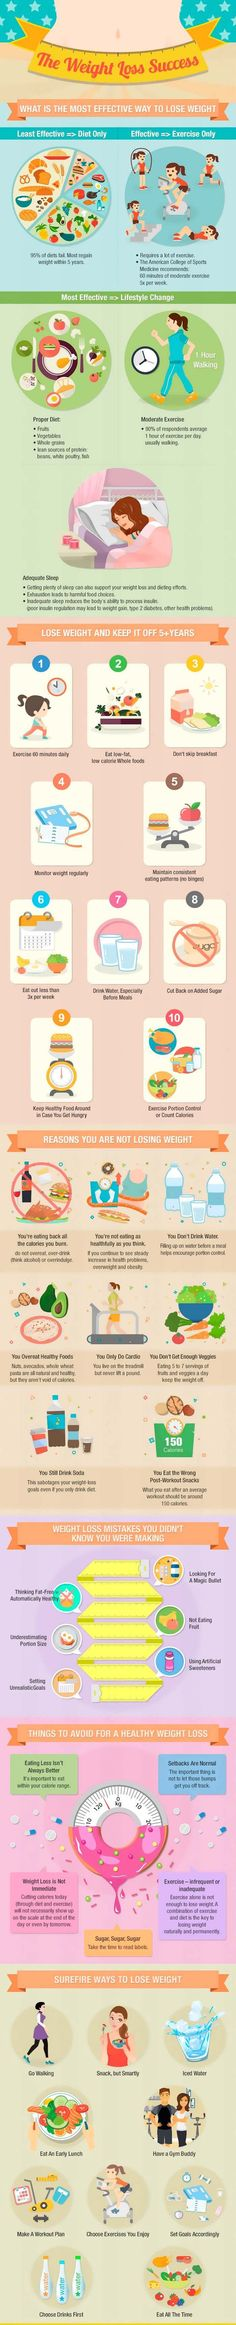 How to lose 23 pounds in 21 days. The most effective ways to lose weight